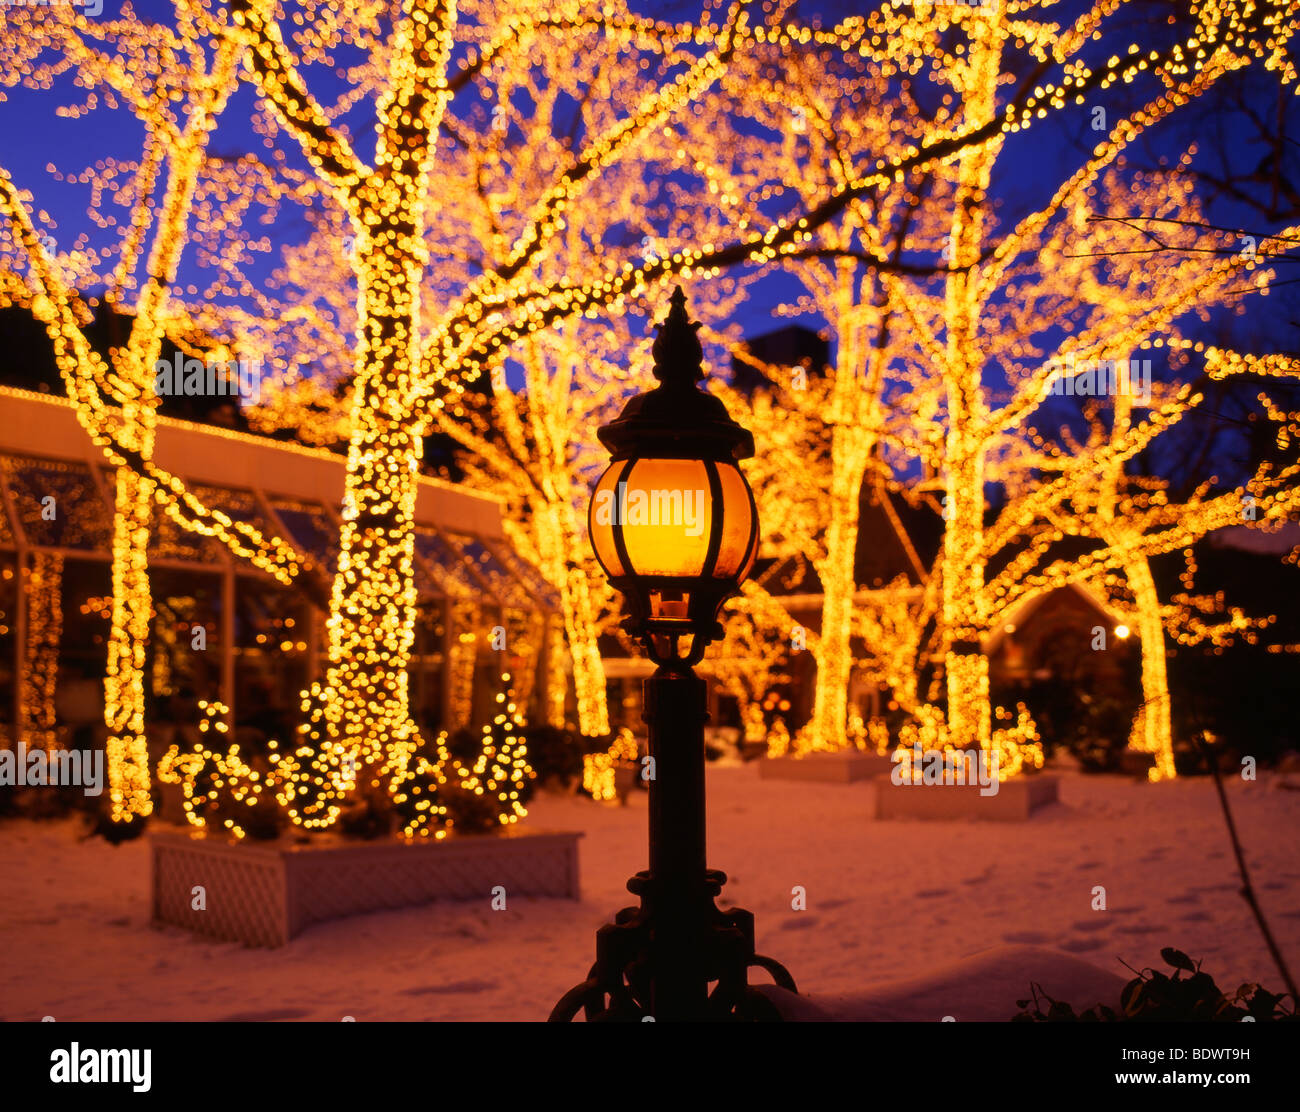 Weihnachten, Central Park, New York City, USA Stockfoto, Bild ...